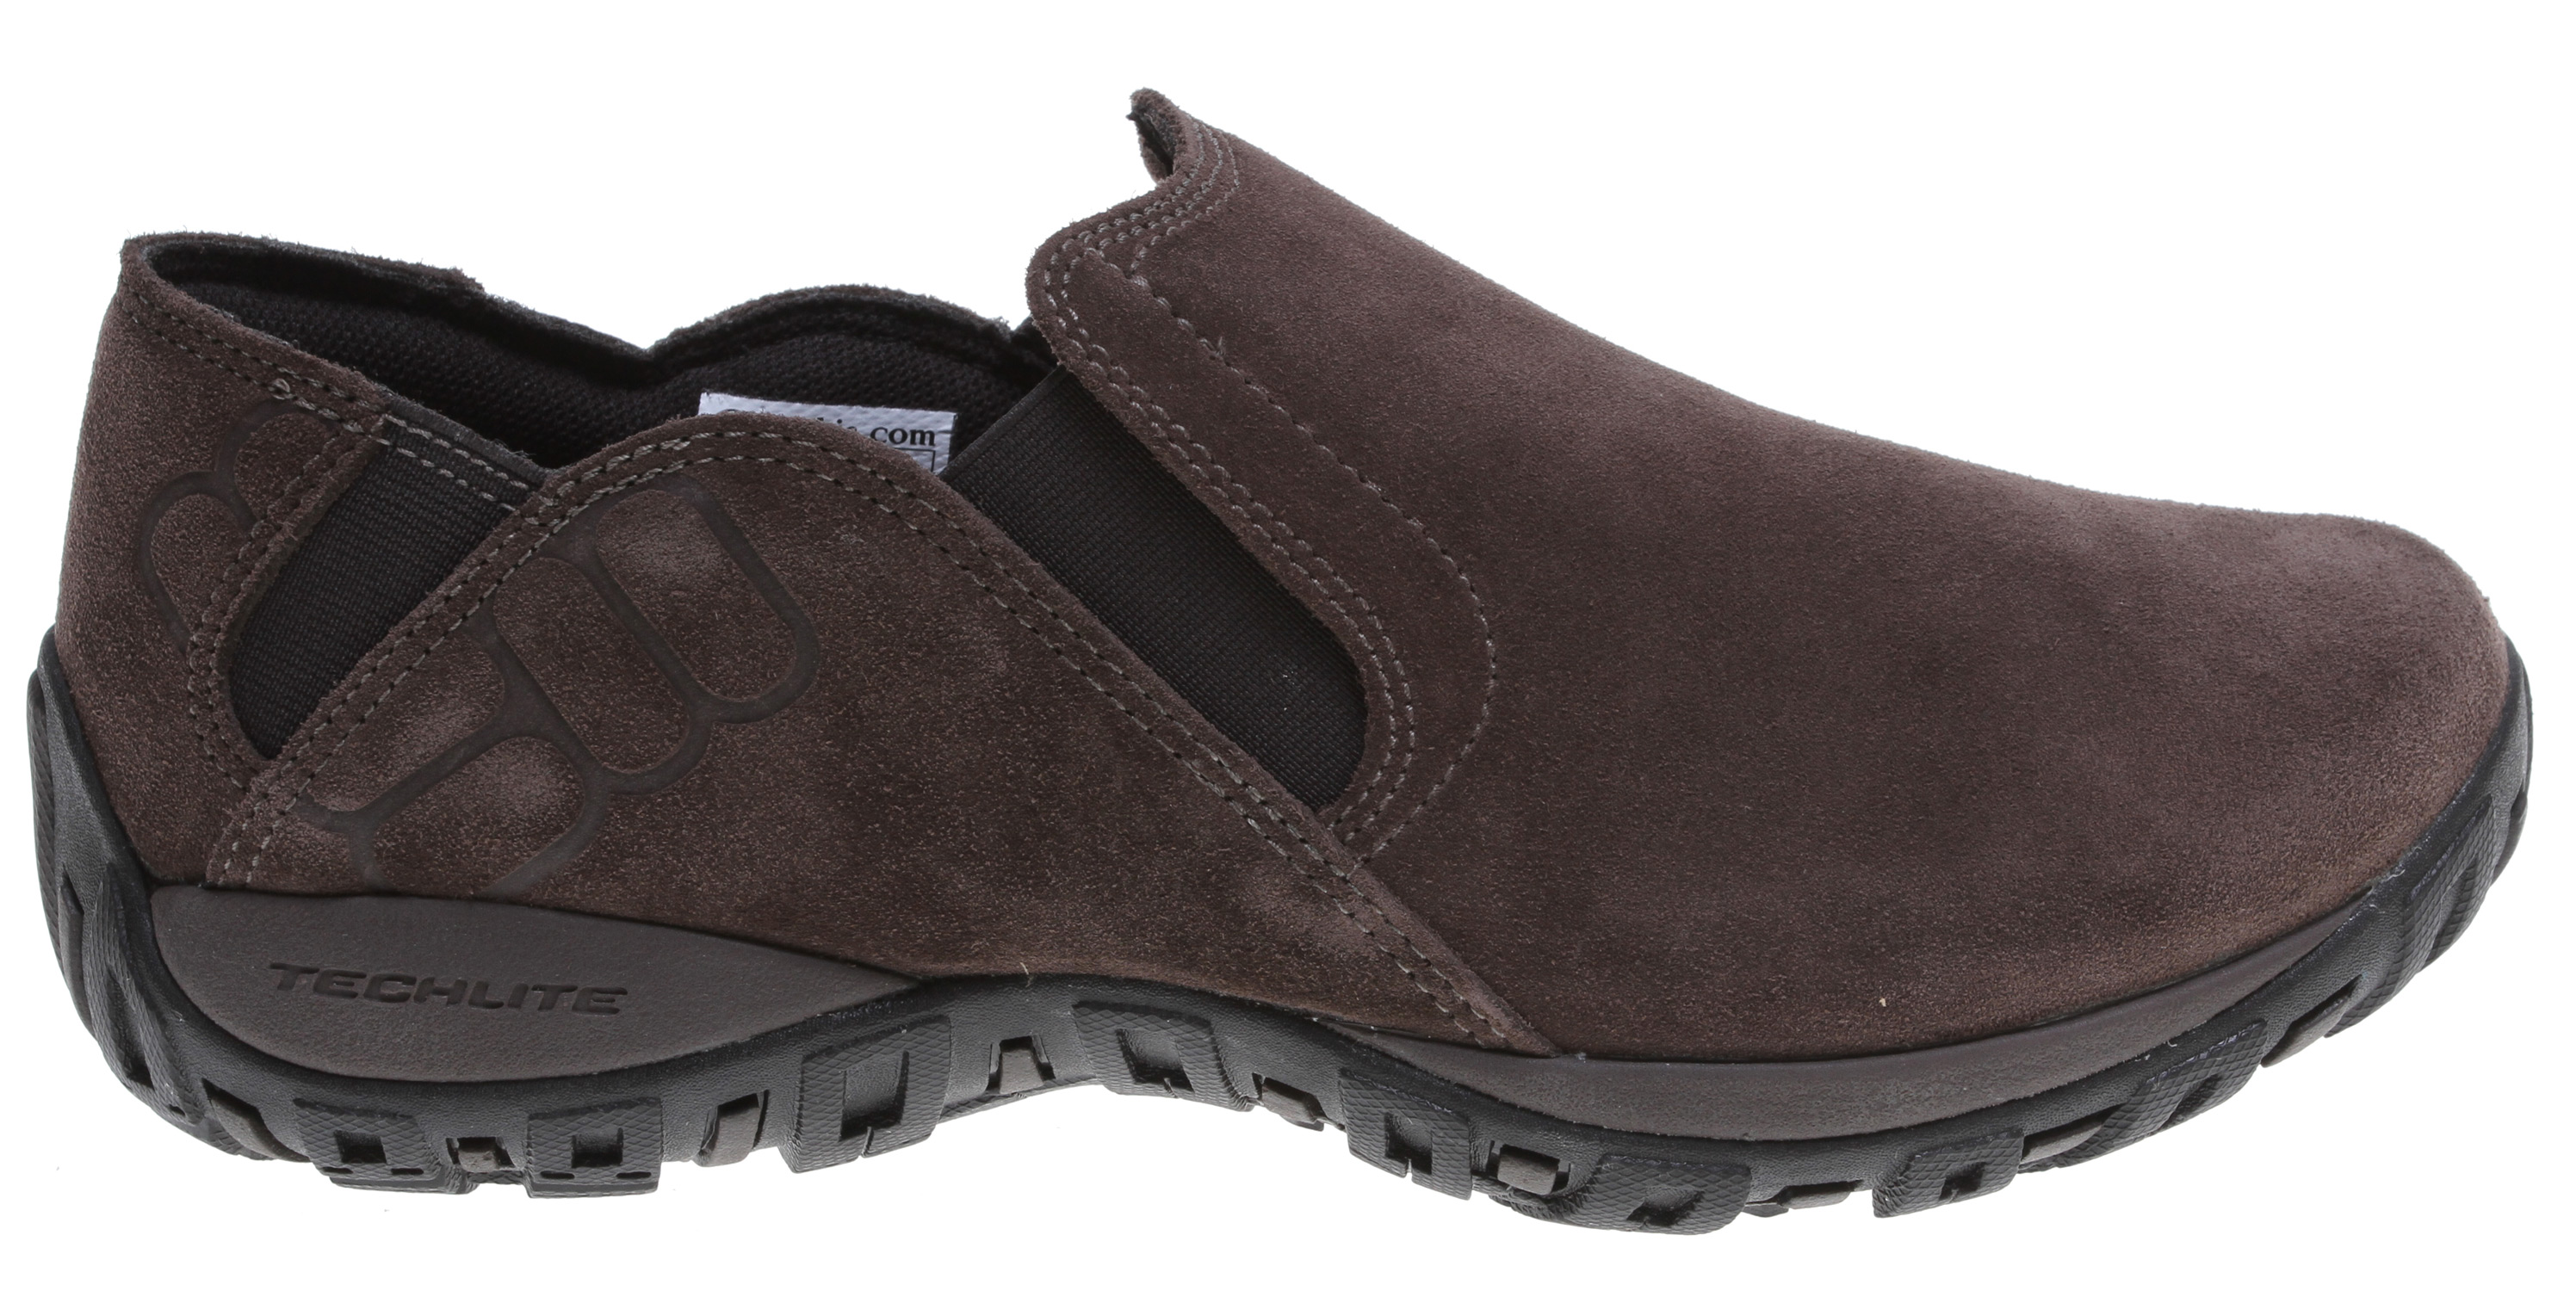 The rugged traction and stability of a much beefier boot in a convenient slip-on; keep feet comfortable and stable during outdoor activities with this durable suede leather shoe. The versatile shape translates easily to casual everyday wear. Key Features of the Columbia Pathgrinder Moc Shoes: Suede leather with stretch panels and molding details Techlite lightweight cushioned midsole Omni-Grip non-marking traction rubber Weight: size 9, 1/2 pair = 13.3 oz/377.5g Imported UPPER Suede leather with stretch panels and molding details TECHLITE MIDSOLE Techlite technology OMNI-GRIP OUTSOLE High traction non-marking rubber - $56.95